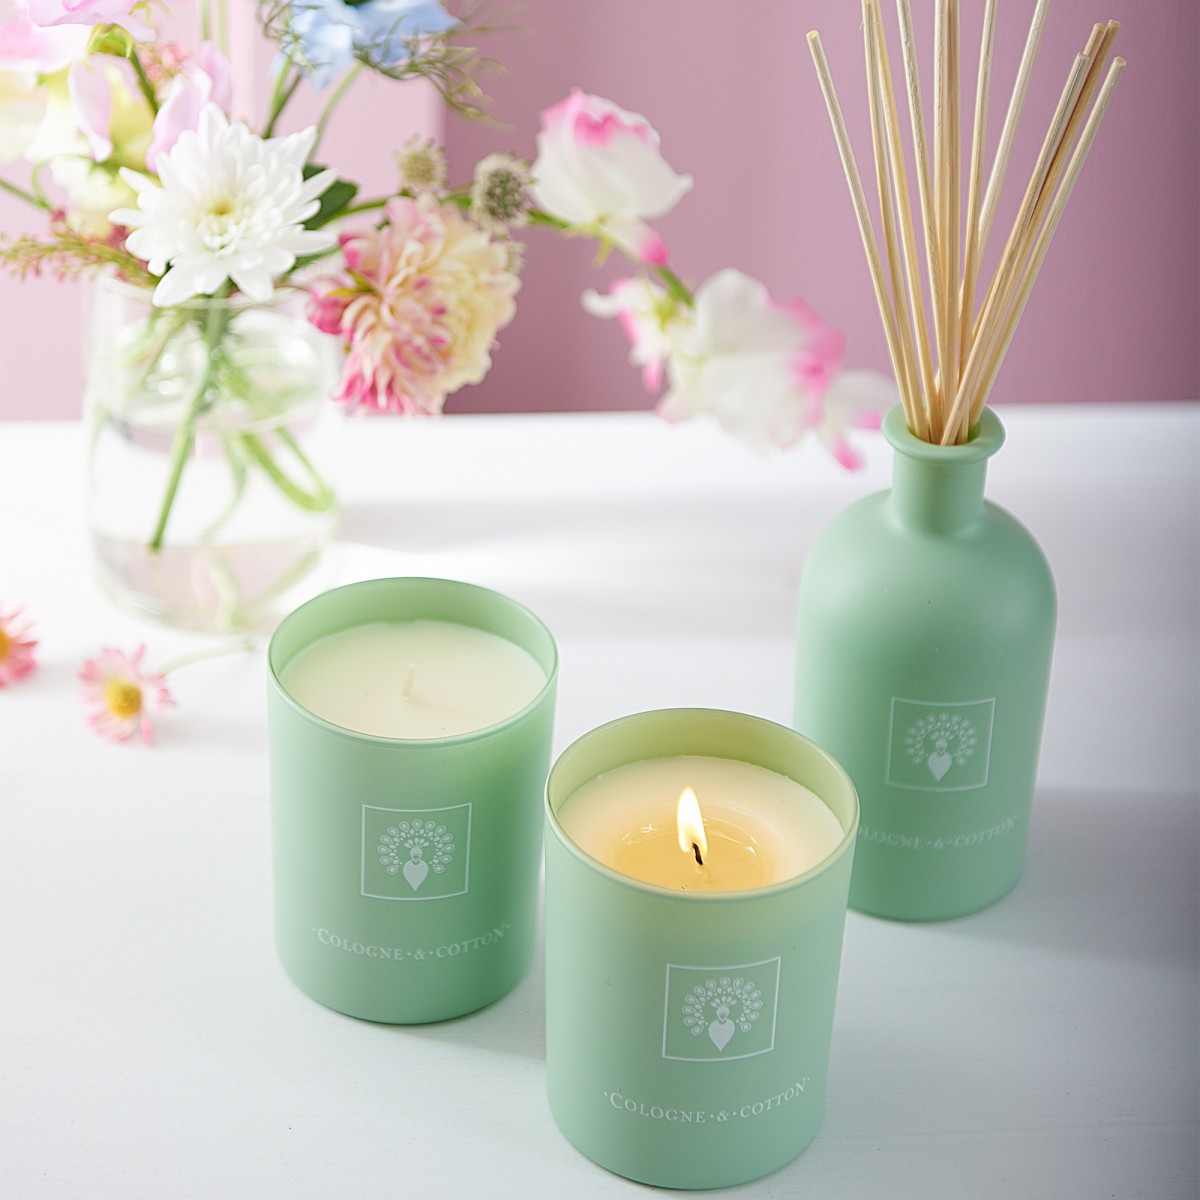 Cologne & Cotton Candle Jasmine 180g